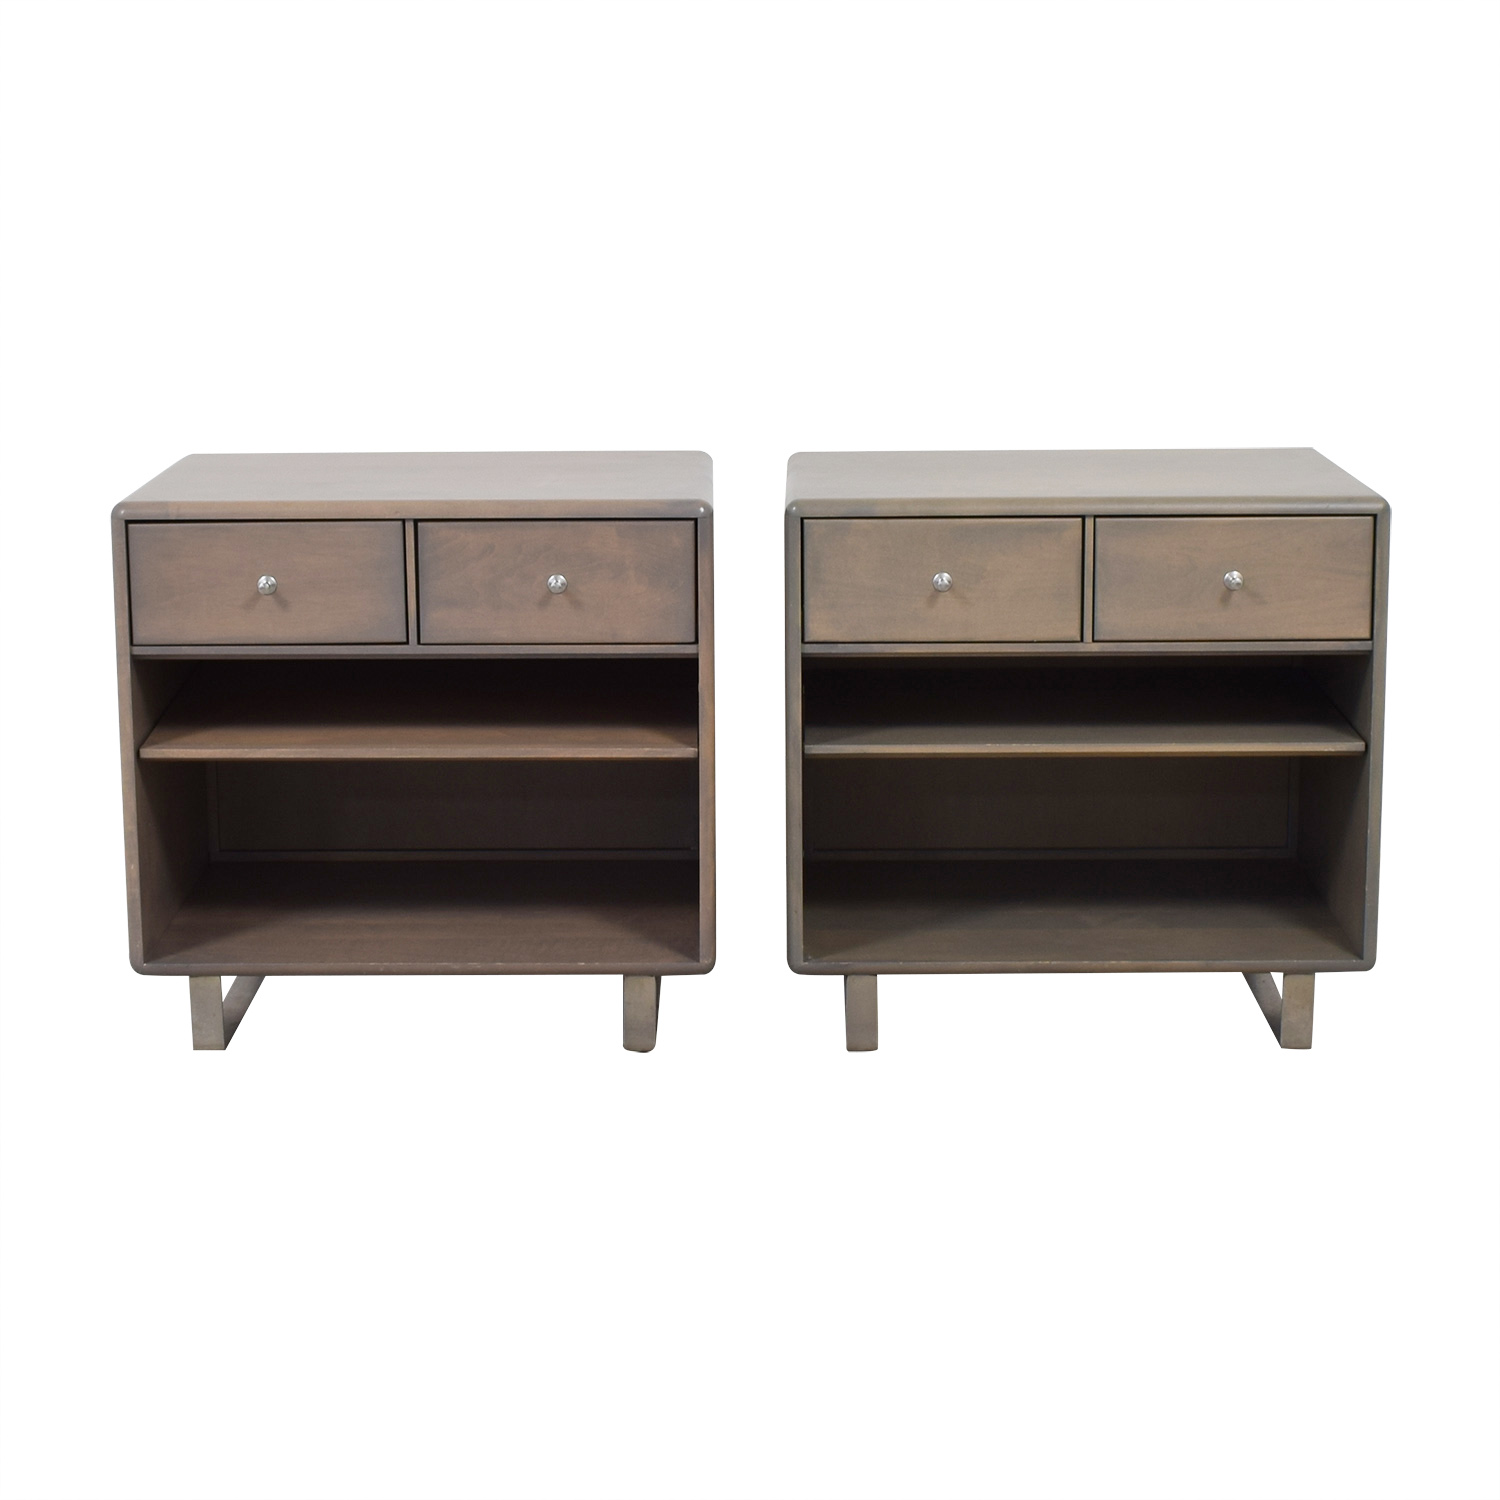 Room & Board Room & Board Whitney Two-Drawer Nightstands second hand